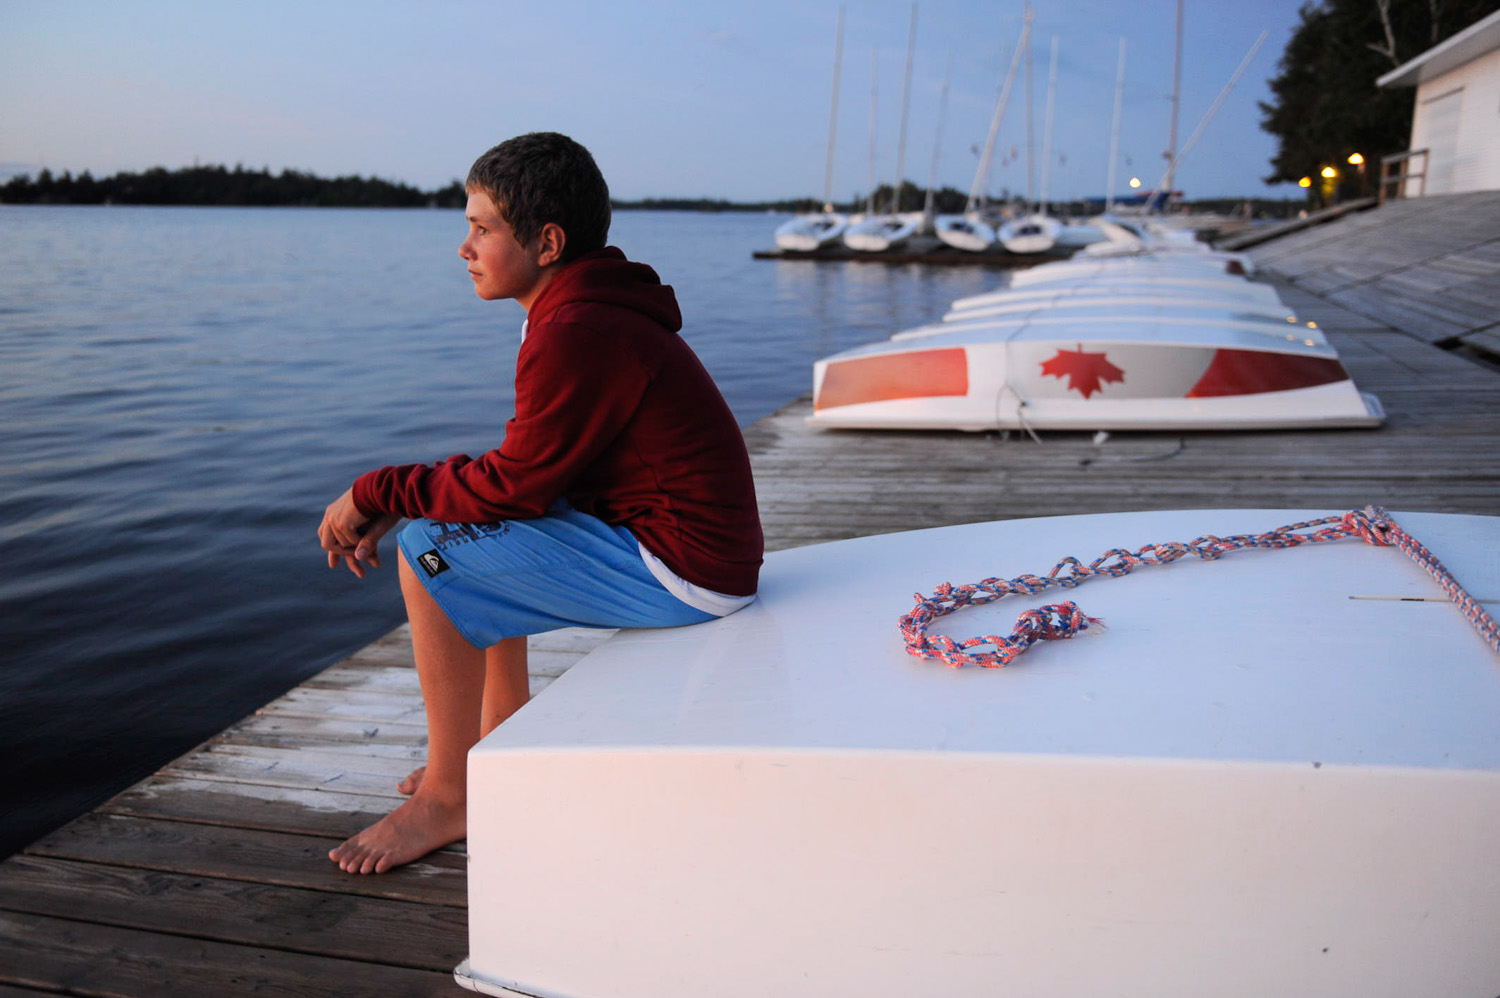 Sailing boy by Winnipeg editorial photographer